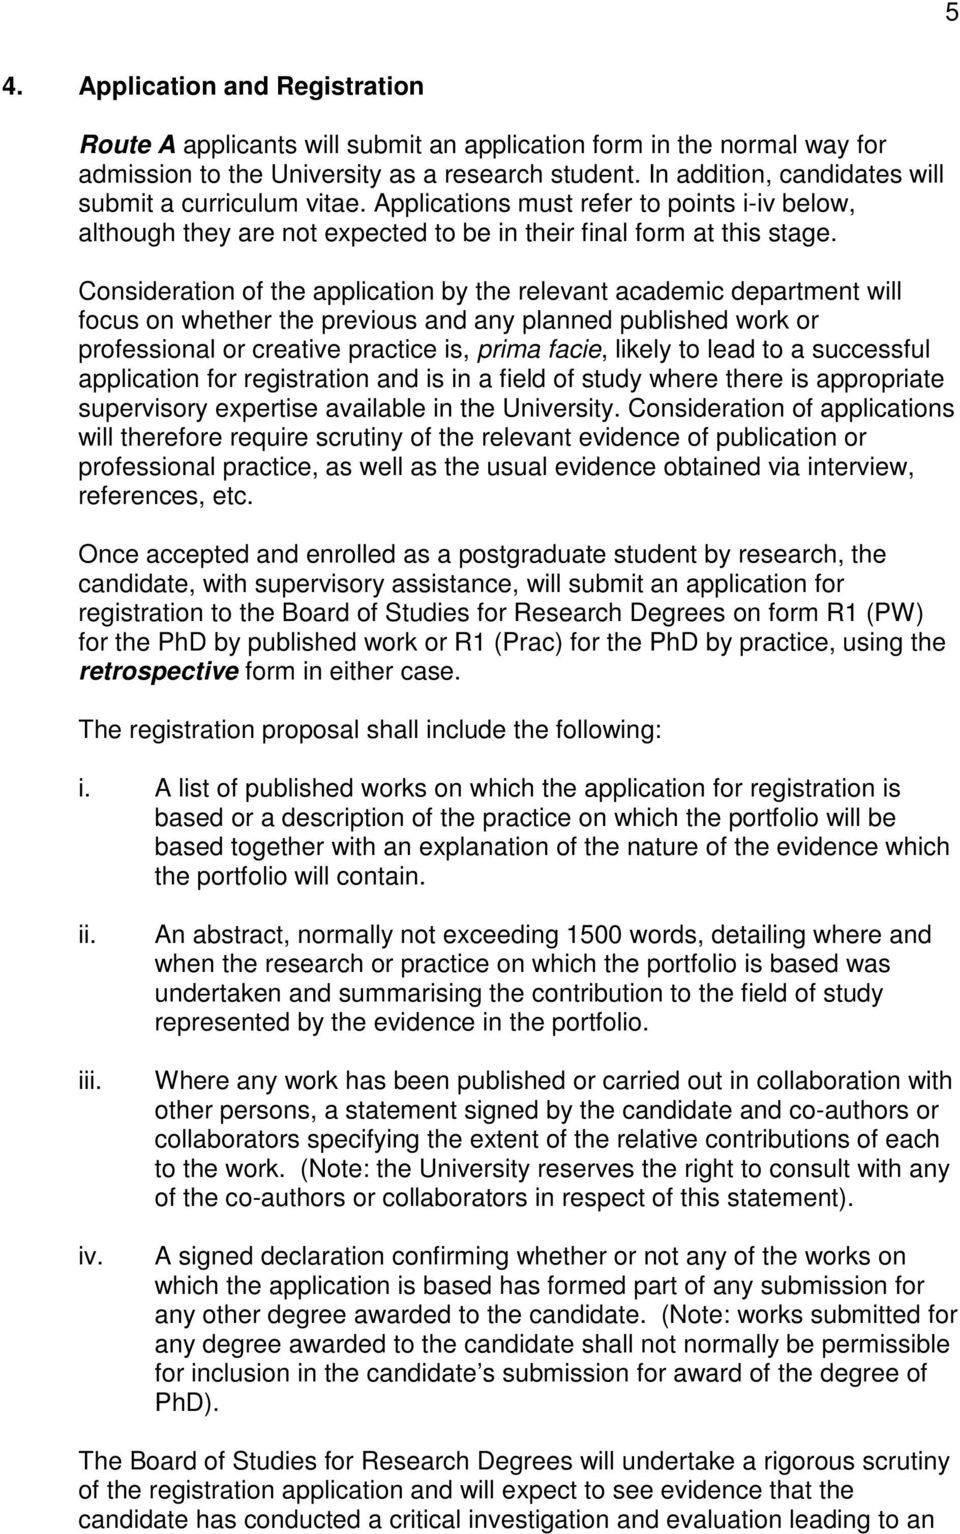 Consideration of the application by the relevant academic department will focus on whether the previous and any planned published work or professional or creative practice is, prima facie, likely to